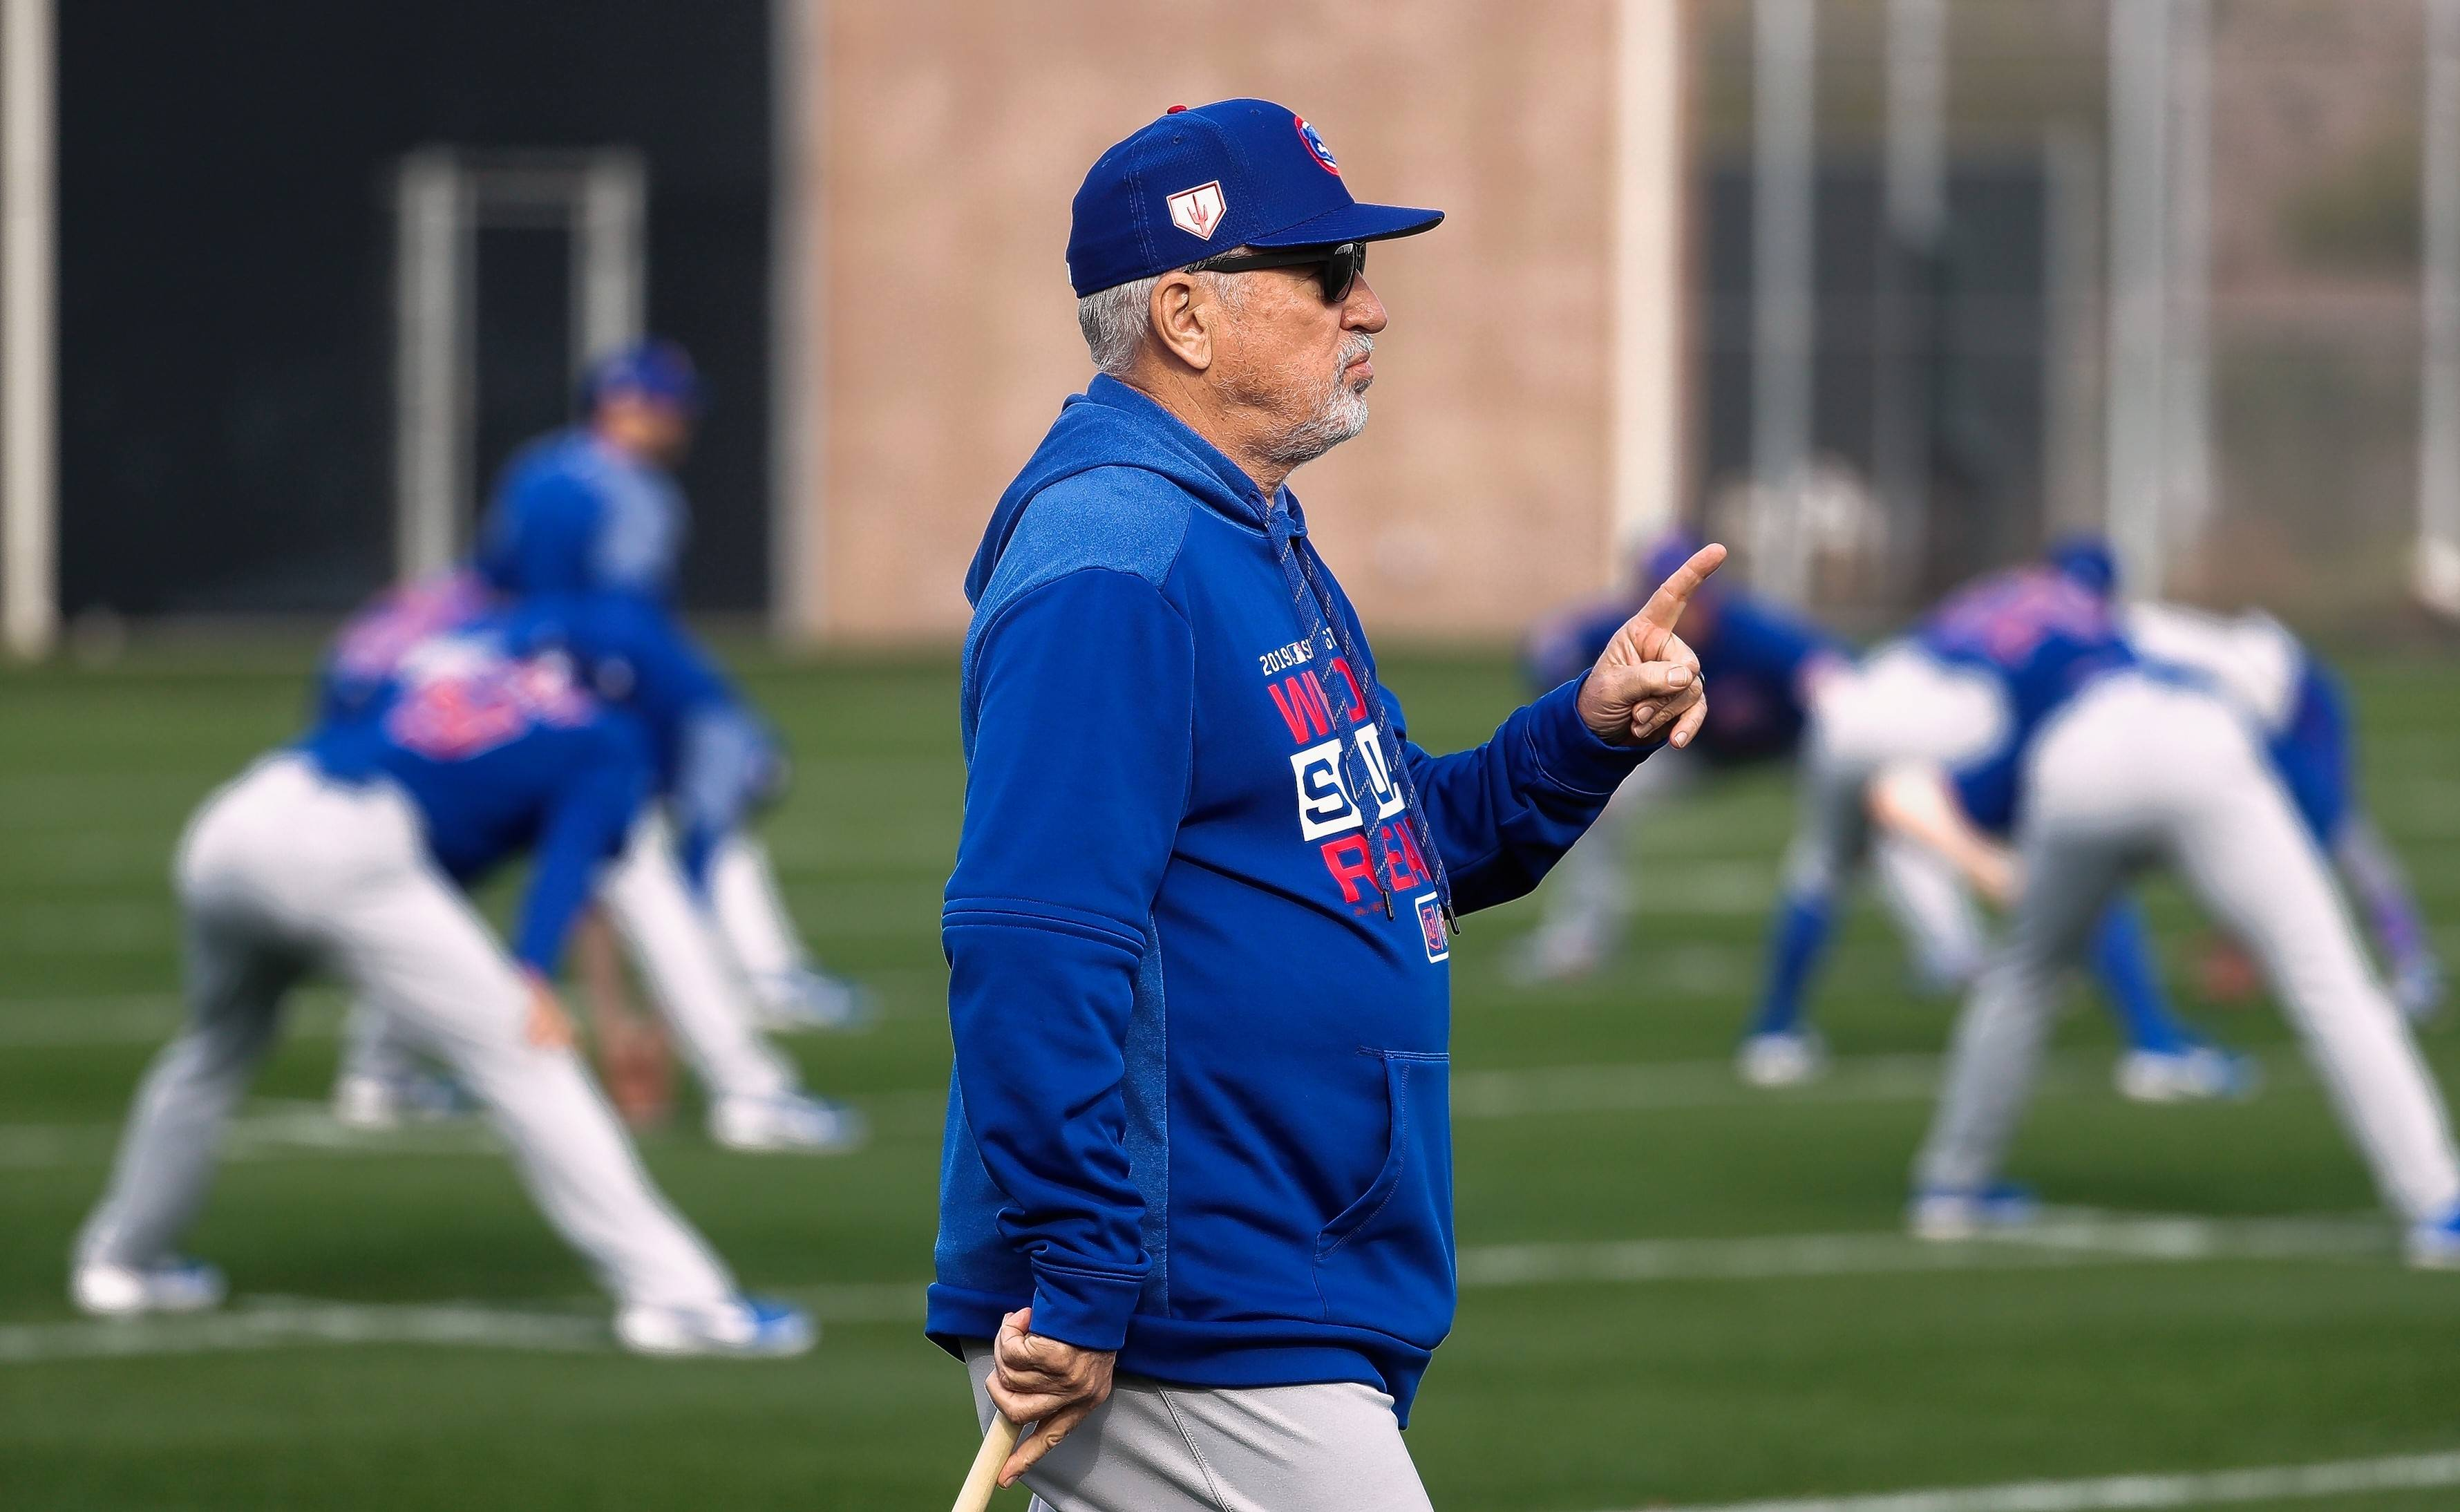 FILE - In this Feb. 15, 2019, file photo, Chicago Cubs manager Joe Maddon watches during a spring training baseball workout, in Mesa, Ariz. Depending on how you look at it ,Maddon is either on the hot seat as a lame-duck manager or in the catbird seat as a potential free-agent manager.